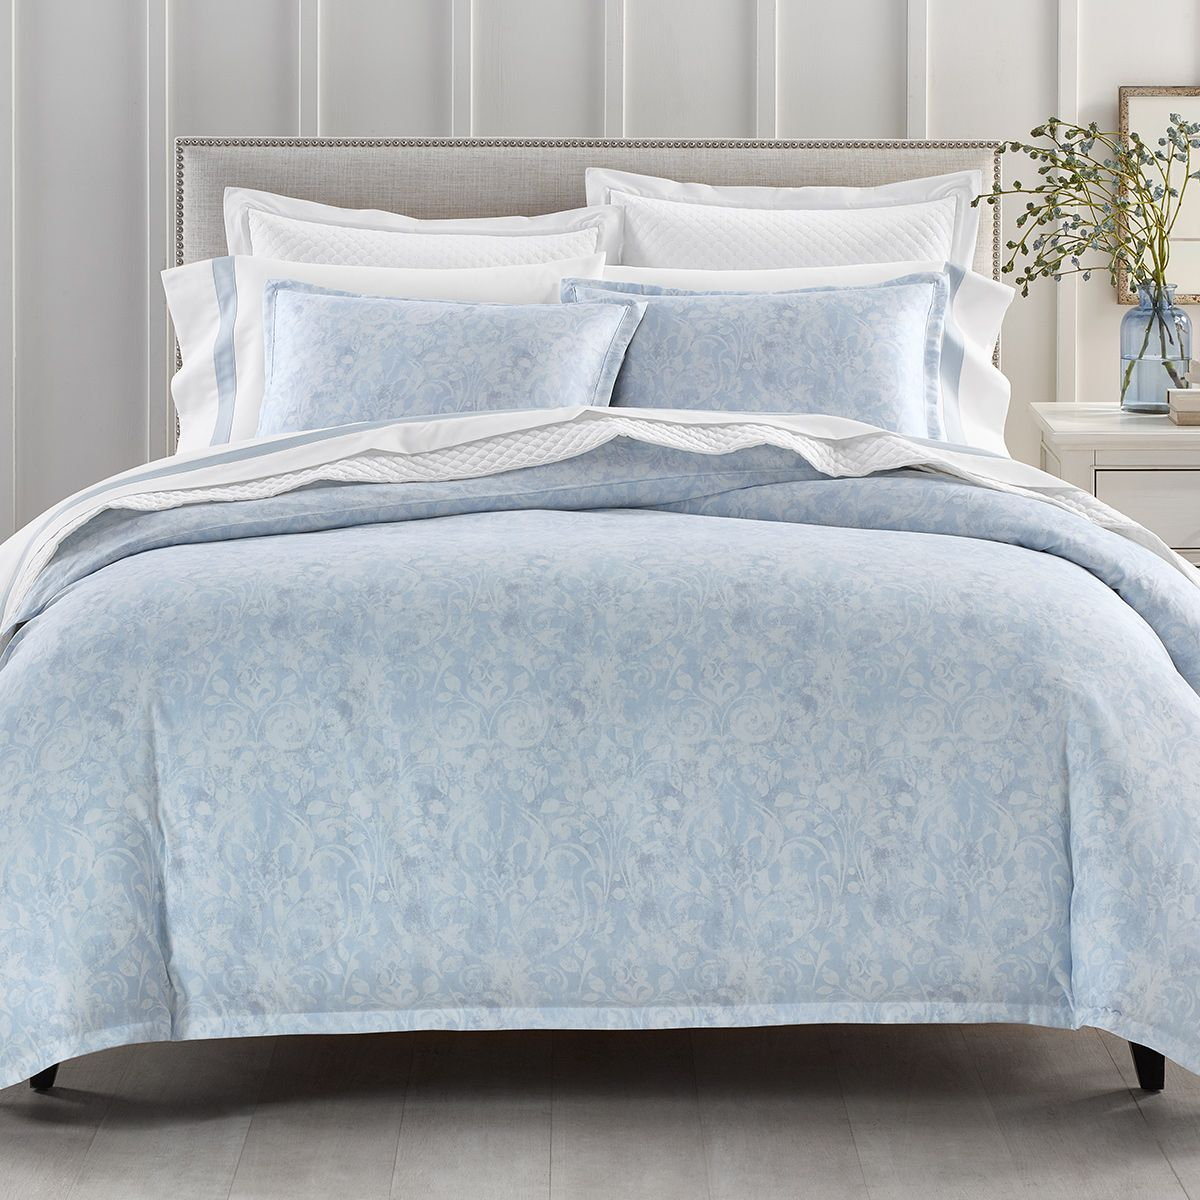 Sleep Luxe Bedding